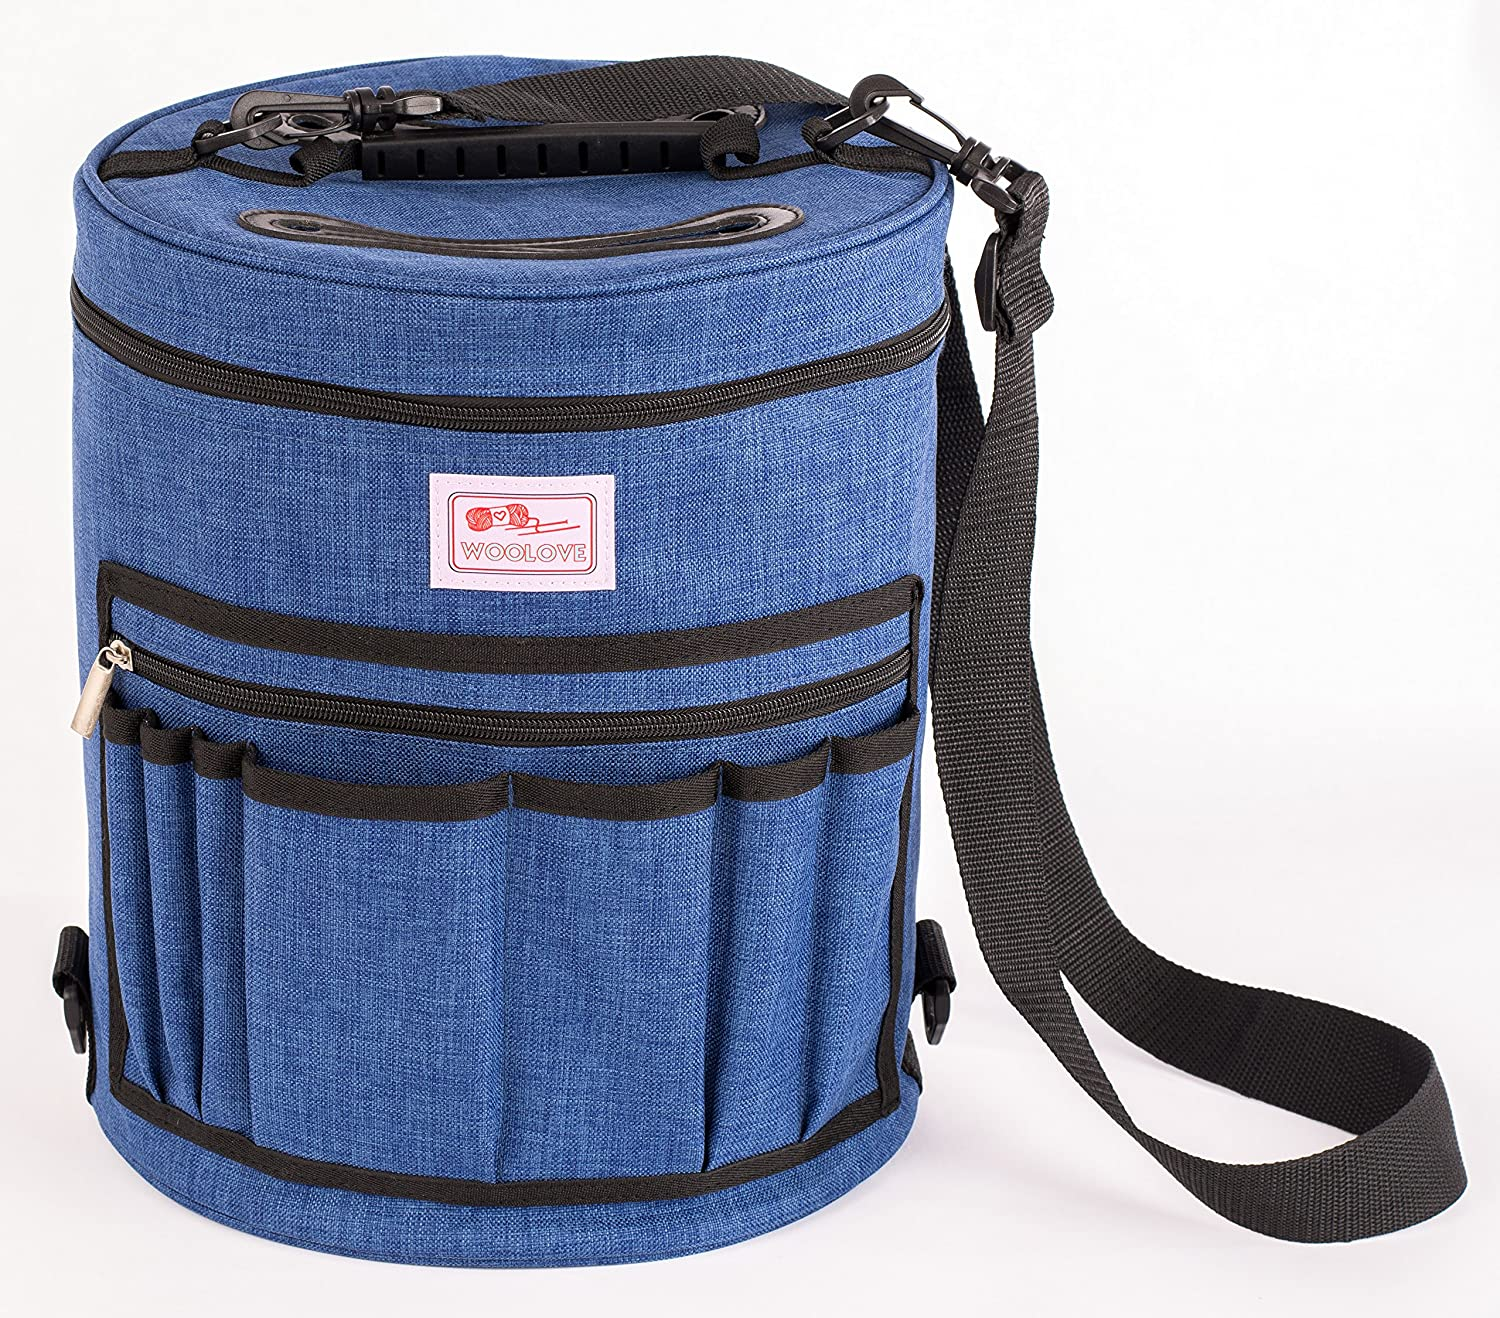 Premium knitting Bag By Woolove - yarn holder (blue, XL) - Portable Tote organizer for knitting with 4 Detachable Dividers - Slits on Top to Protect Wool and Prevent Tangling.